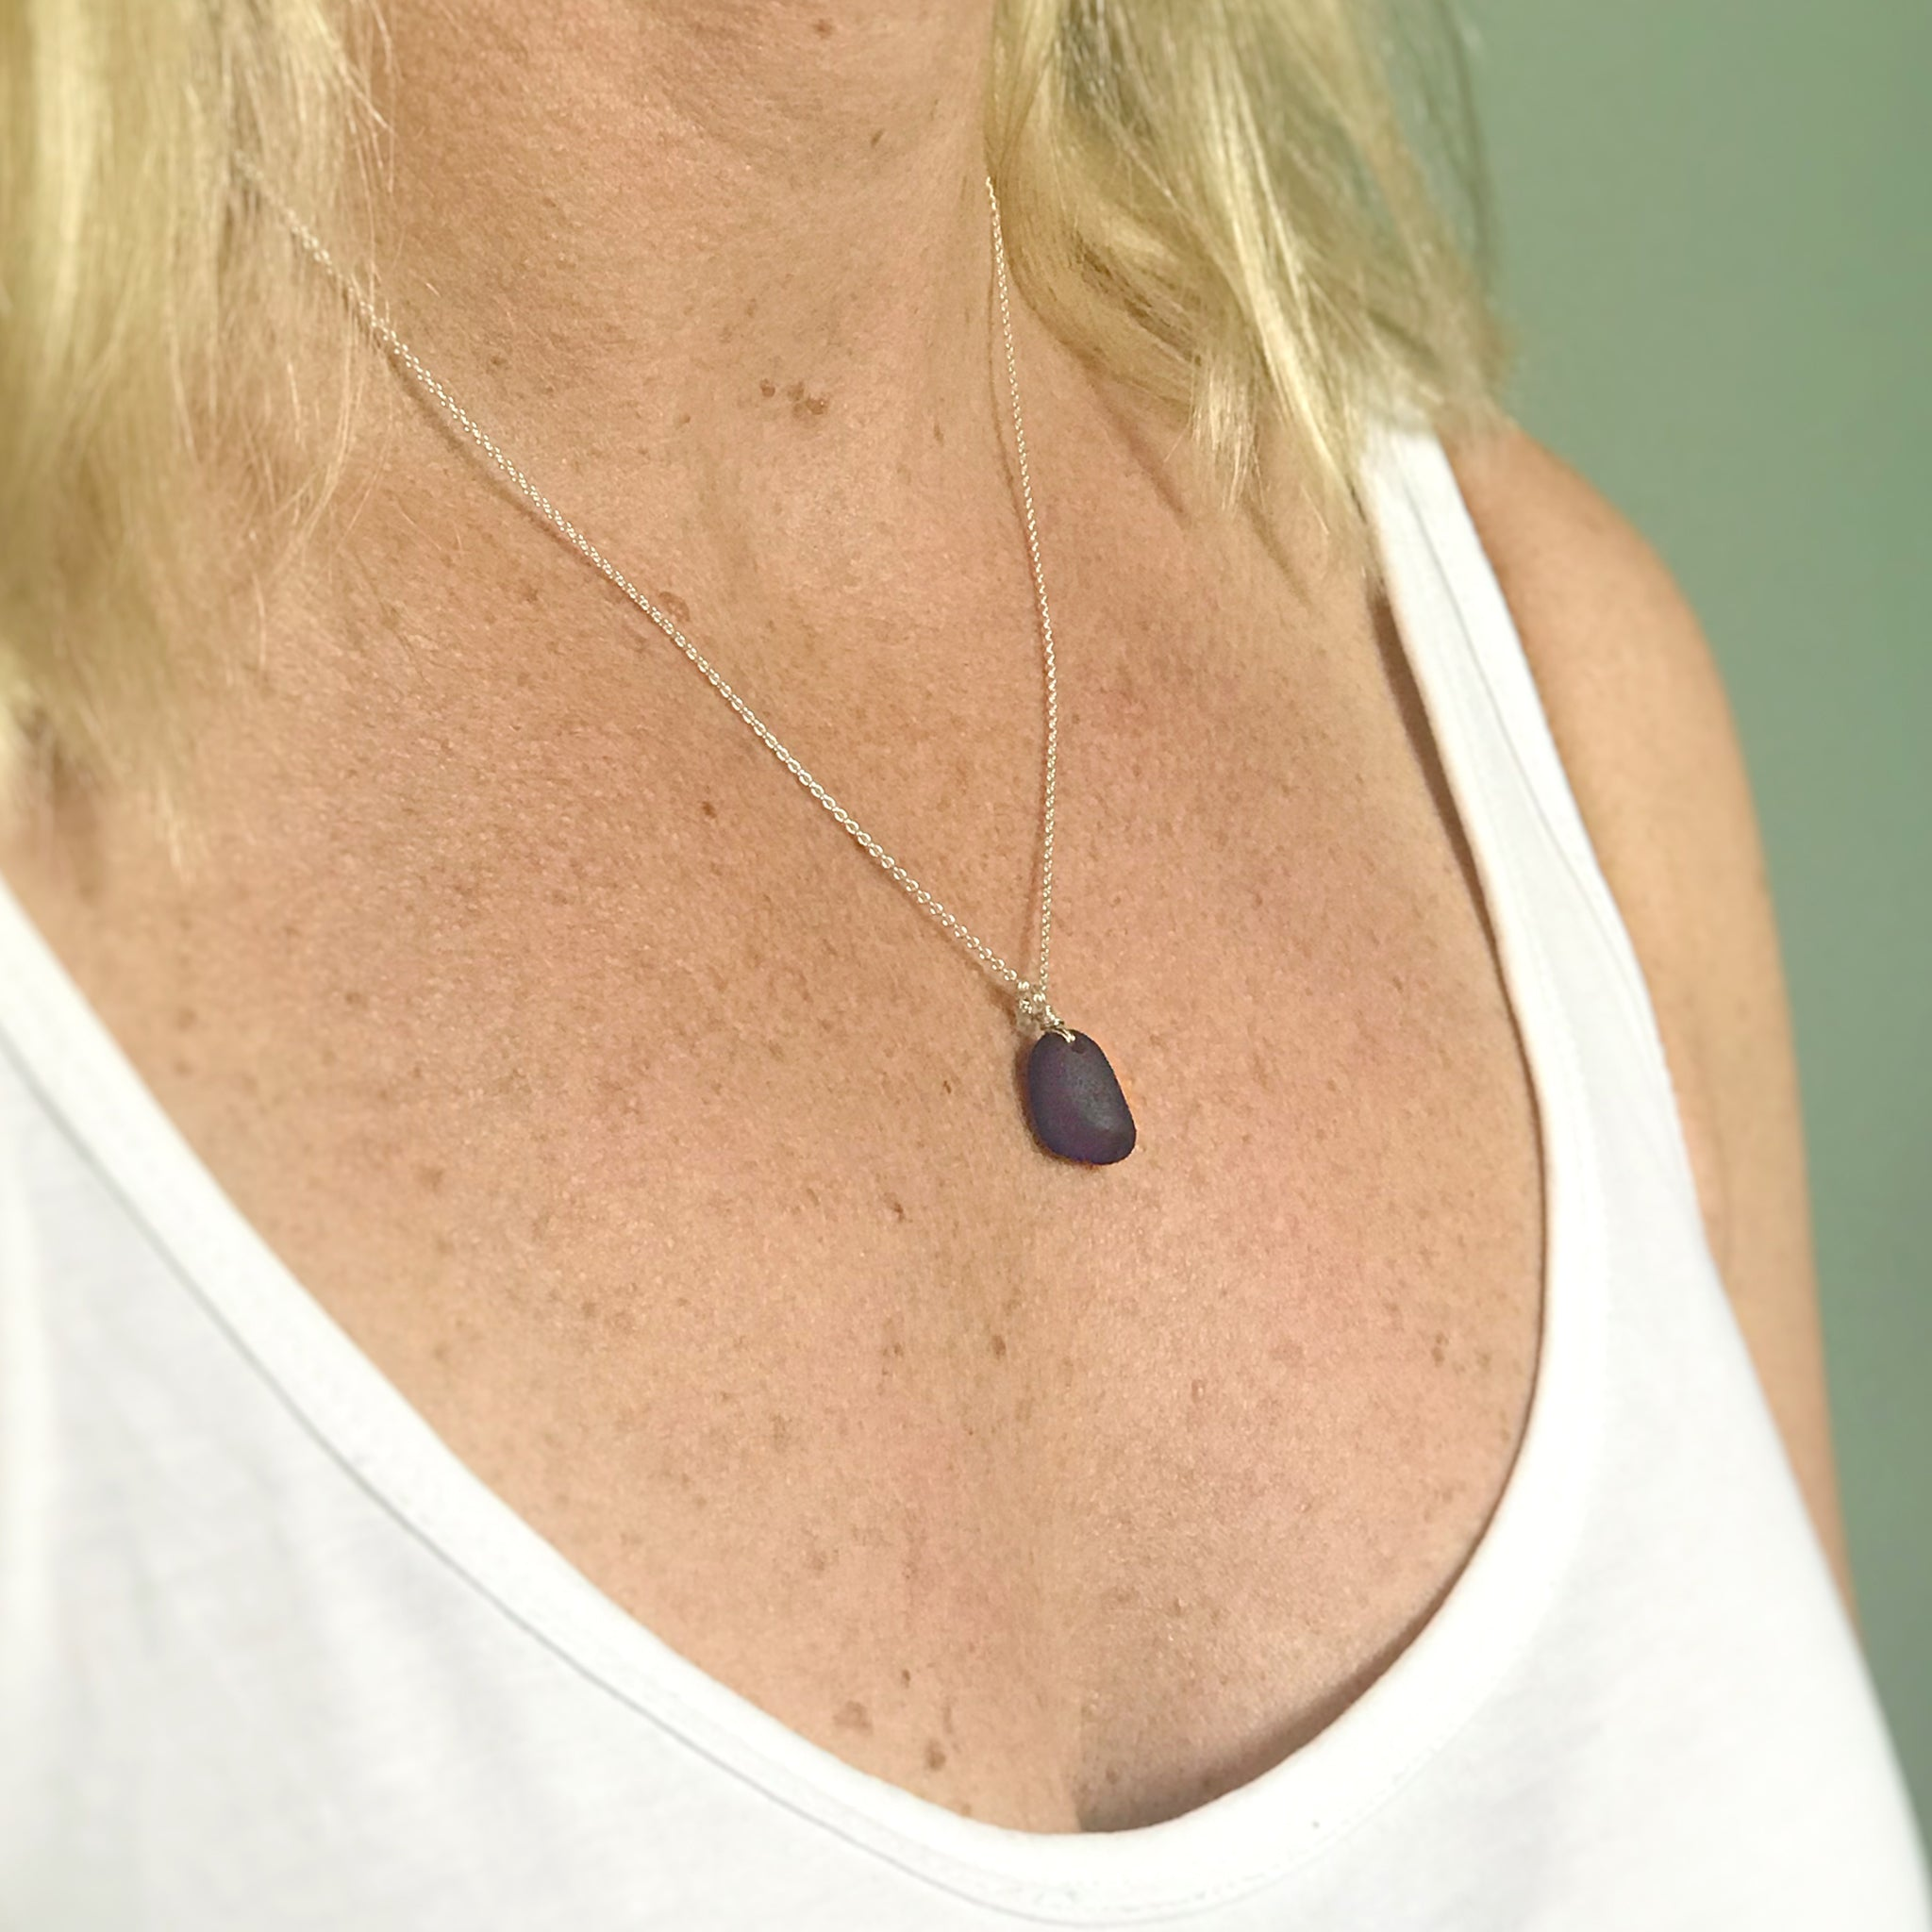 cobalt blue seaglass necklace sterling silver kriket broadhurst gifts for women Sydney